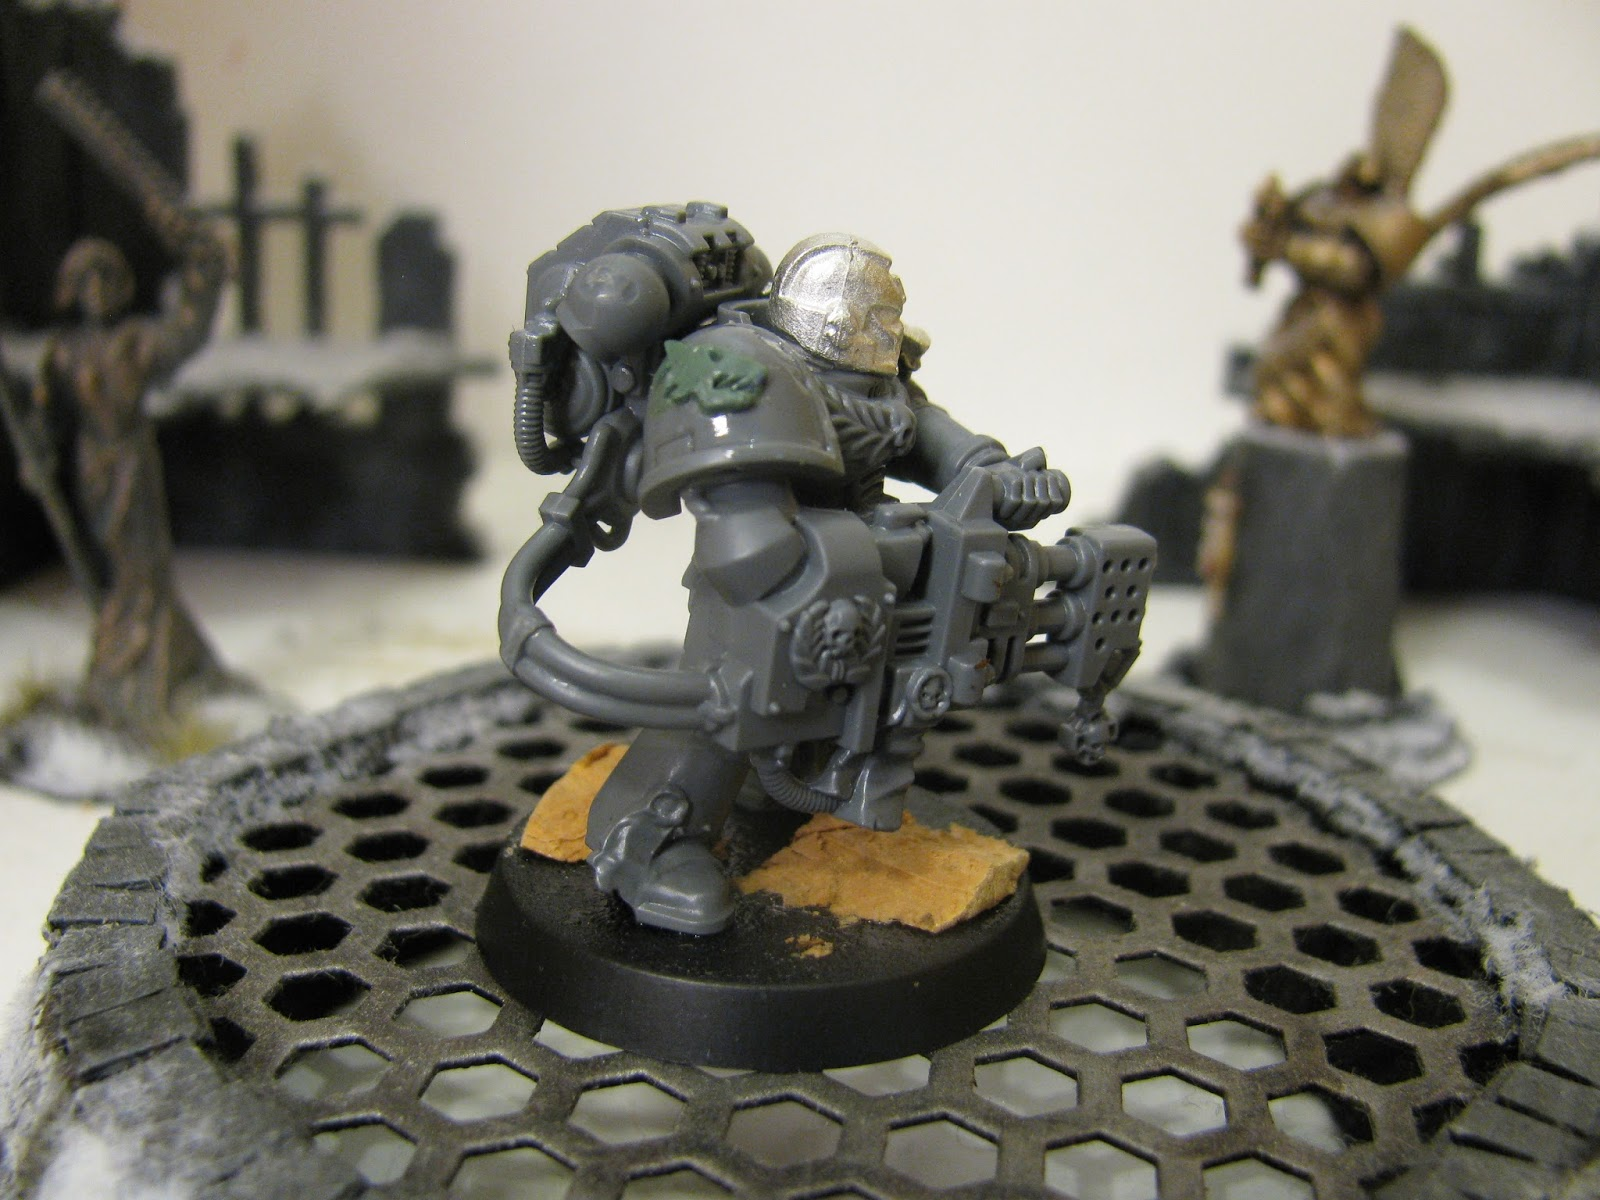 Chipped Fang: Salamanders Deathwatch Battle Brother with a